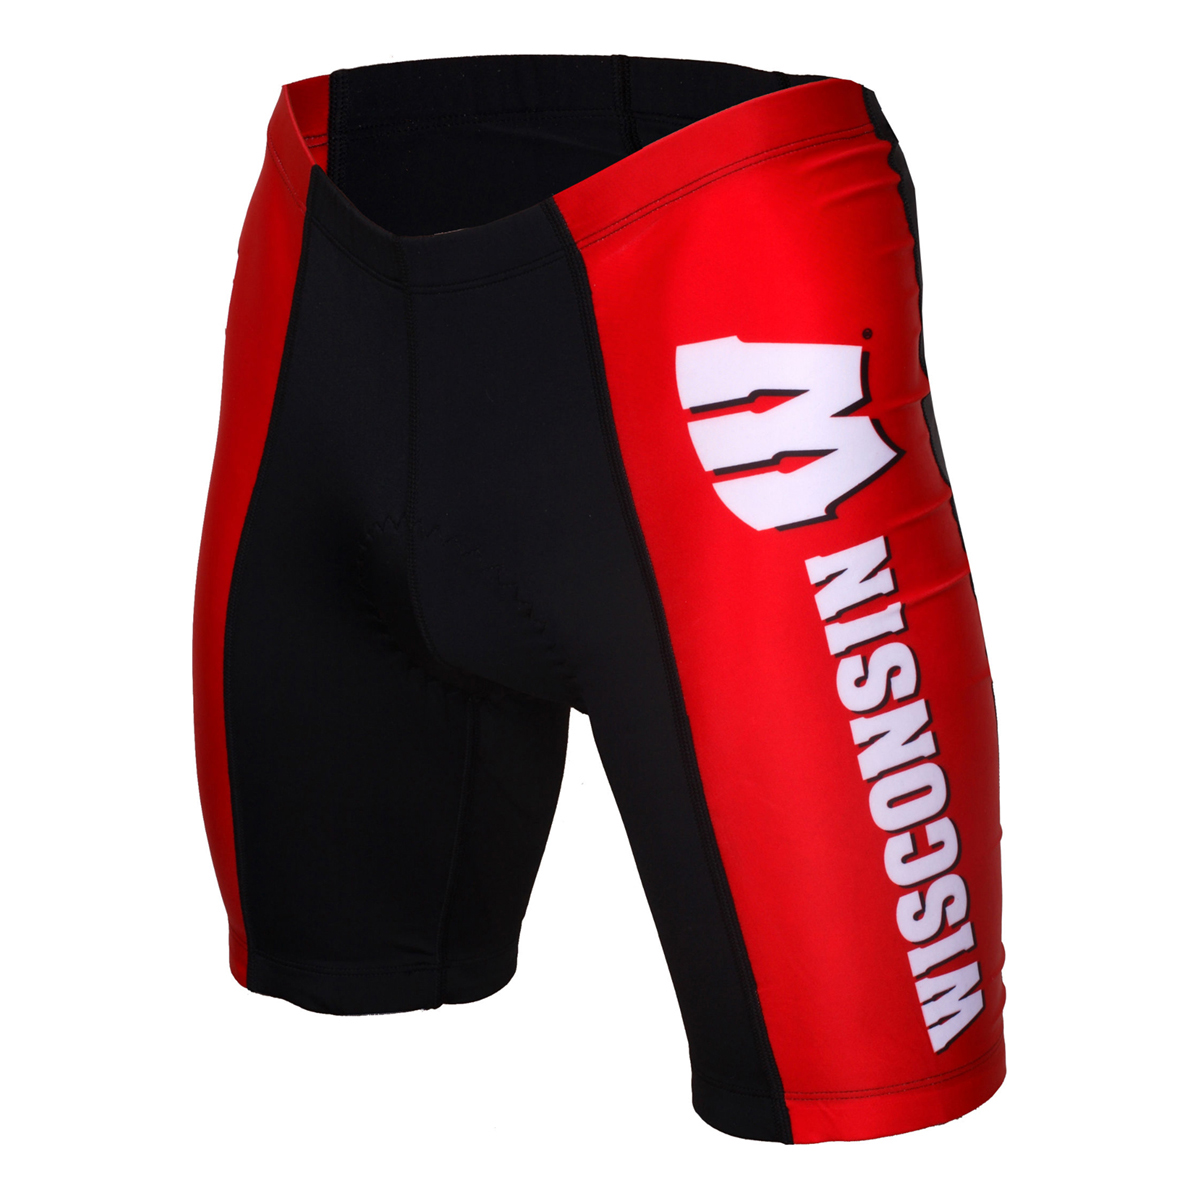 University of Wisconsin Cycling Shorts